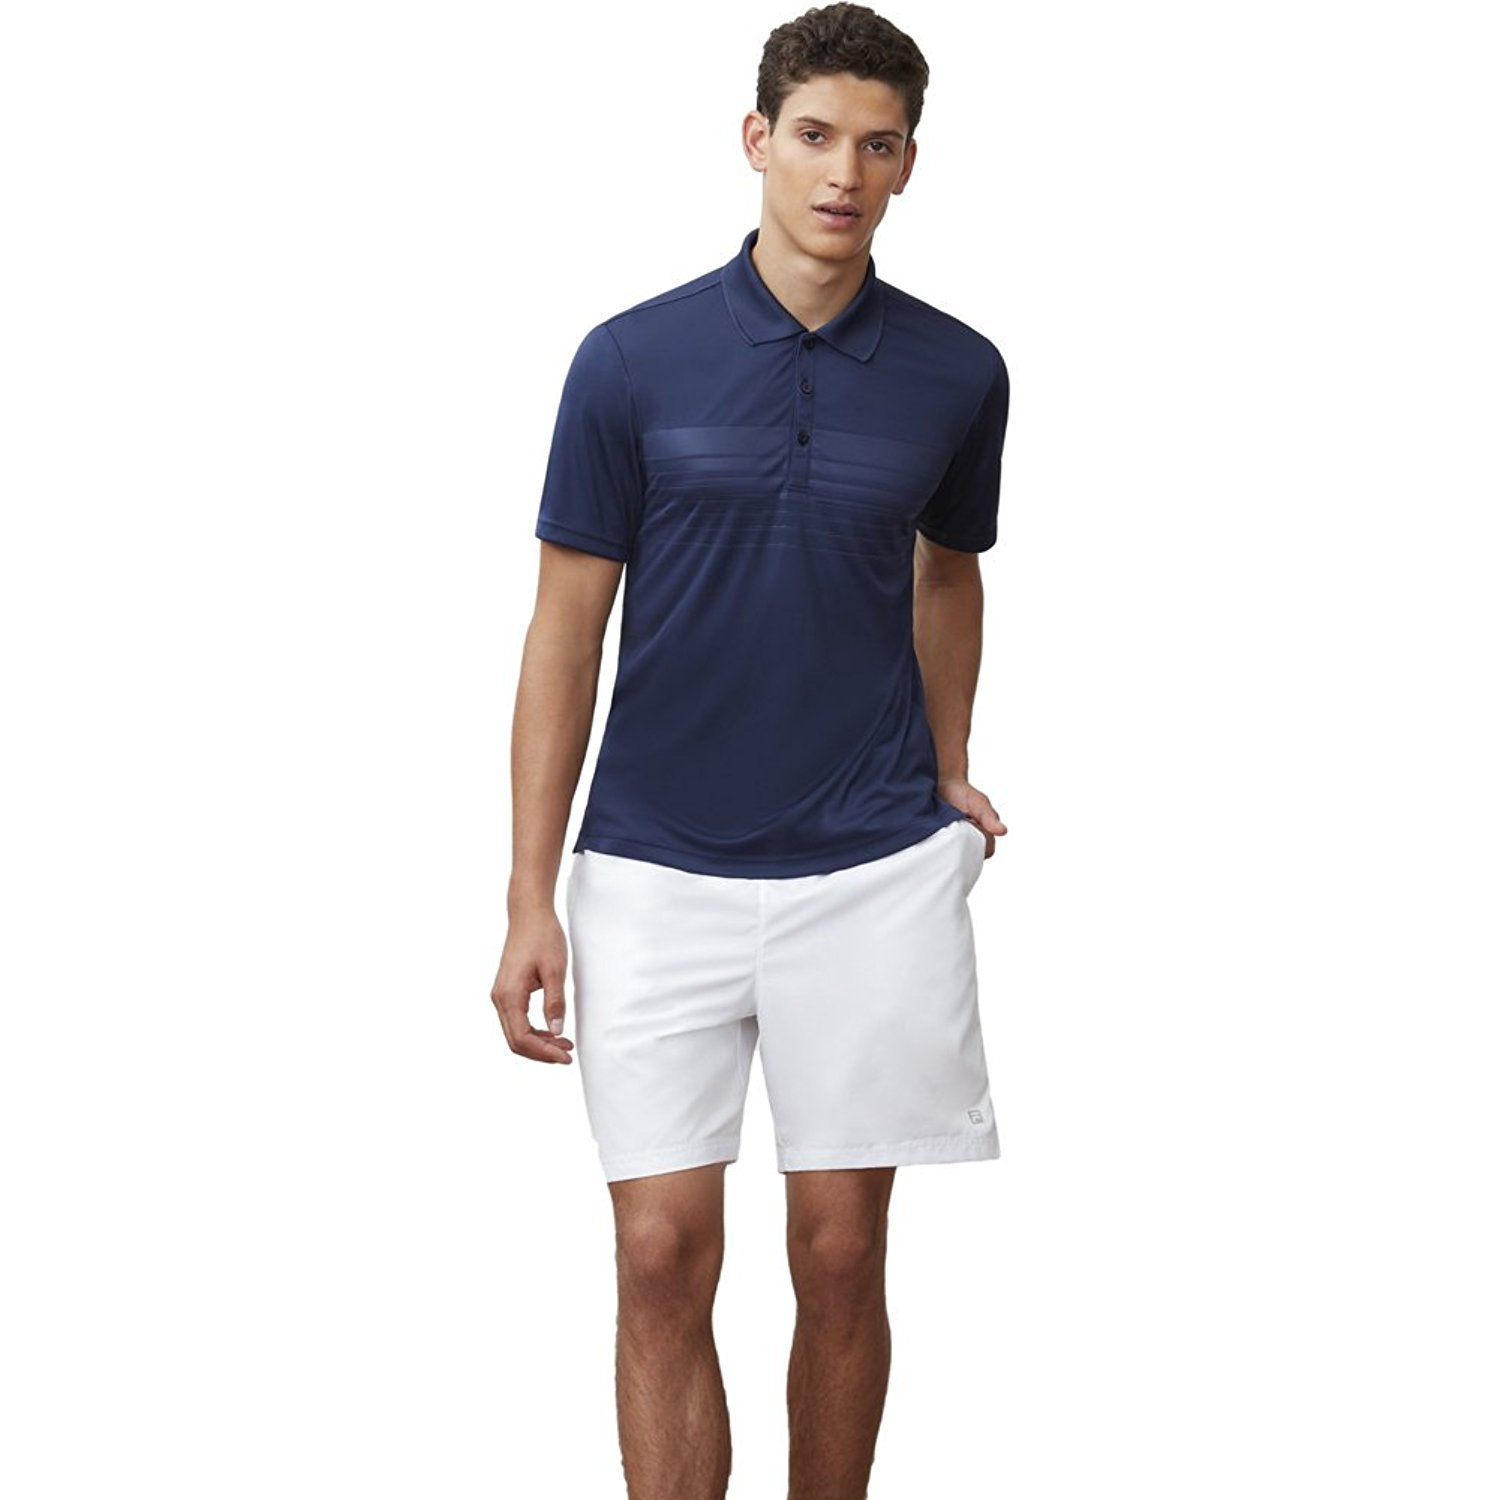 Fila Men's Core Embossed Chest Striped Polo Shirt, Navy, M